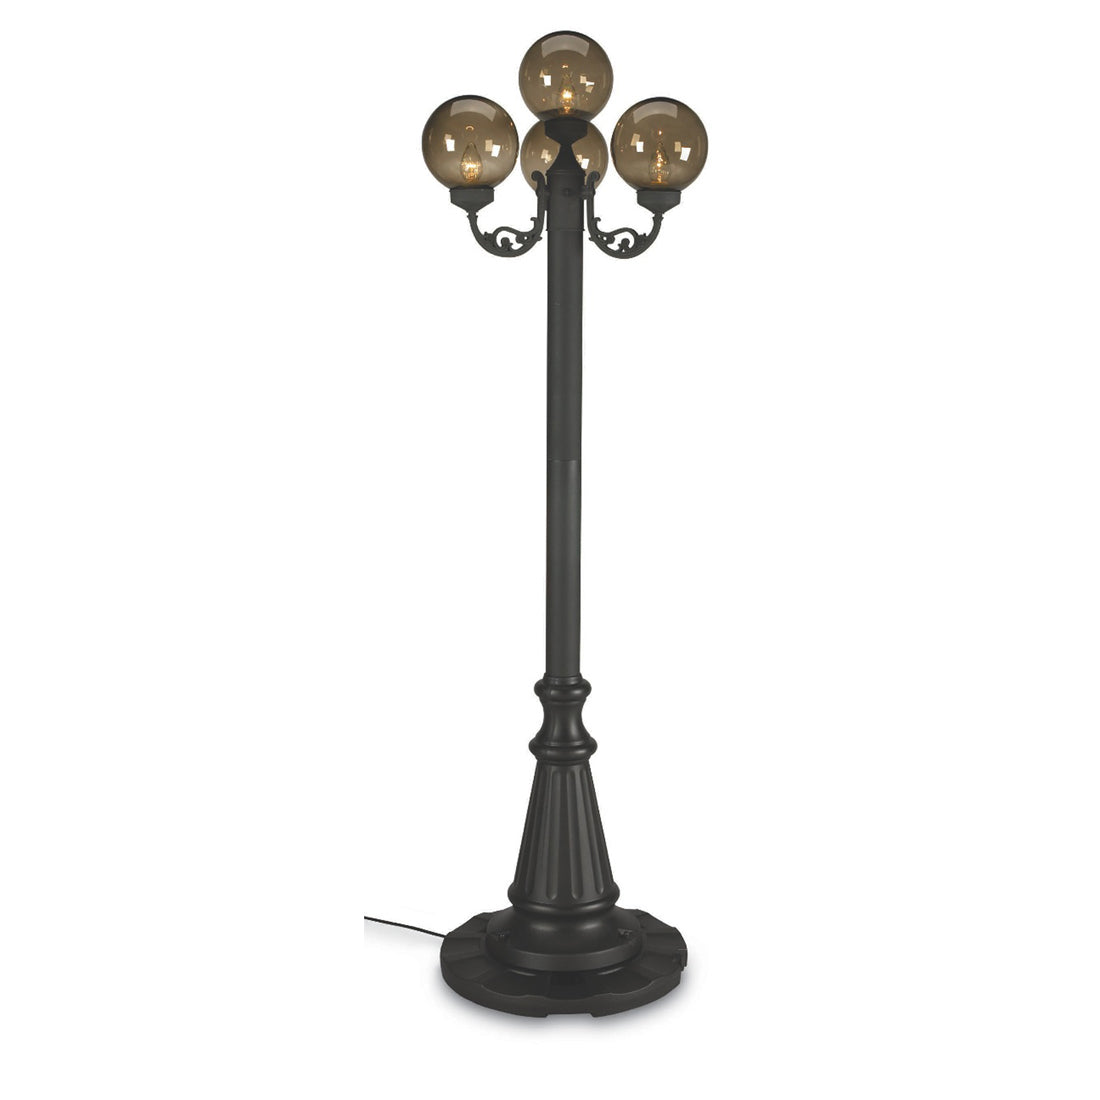 European 00470 Four Bronze Globe Lantern Patio Lamp - Park Style